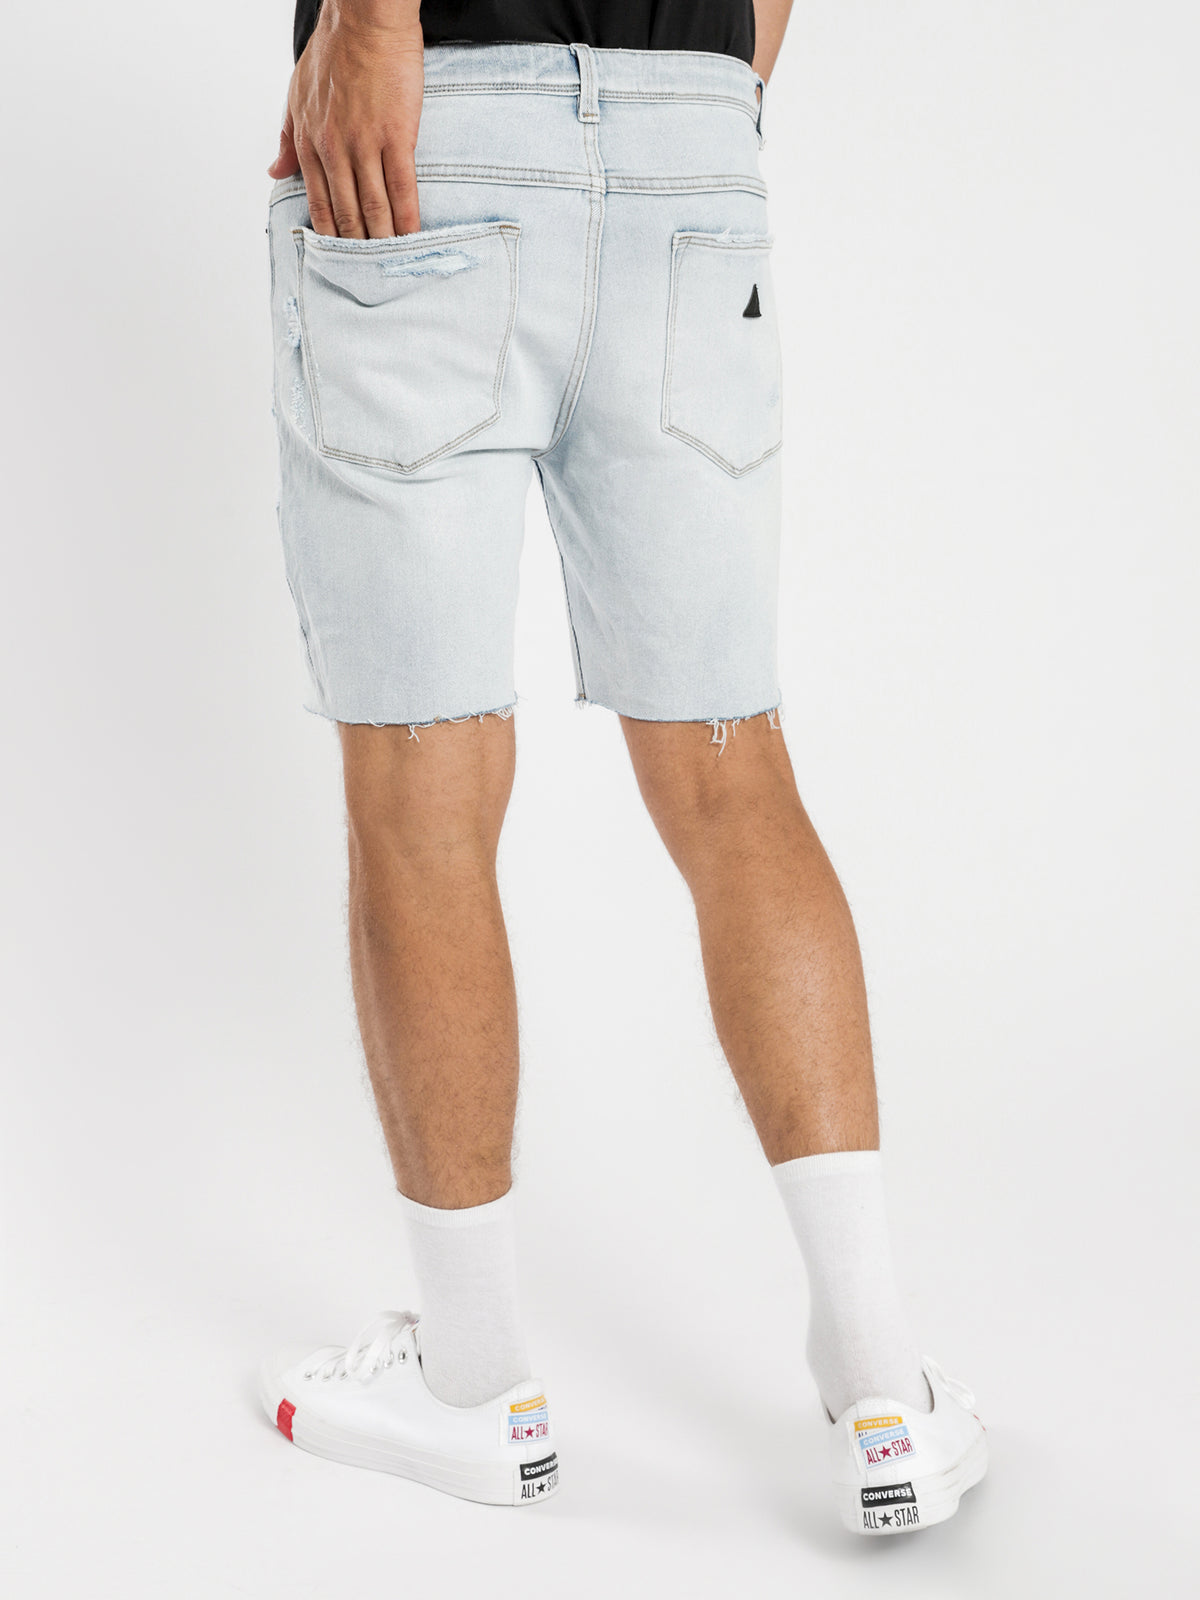 A Dropped Skinny Shorts in No Rules Blue Denim